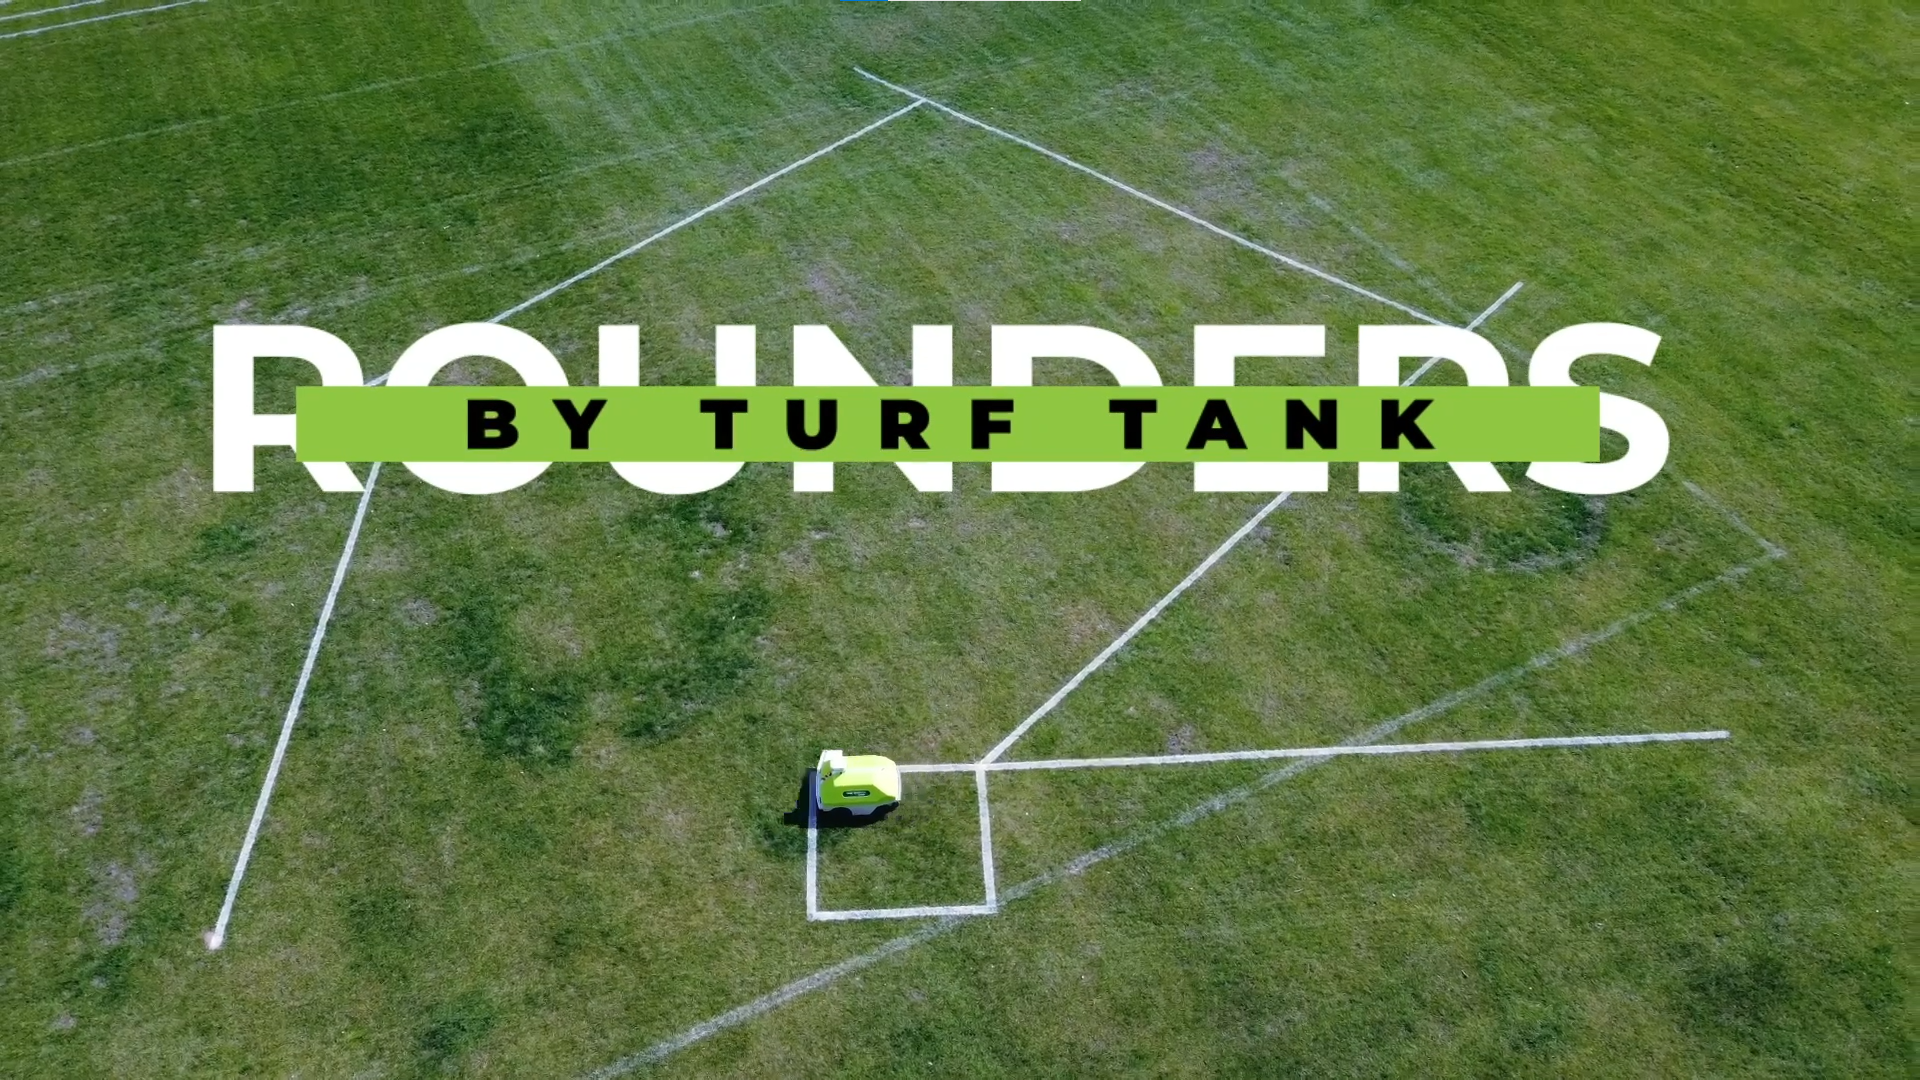 Turf Tank - Robot for rounders pitch markings